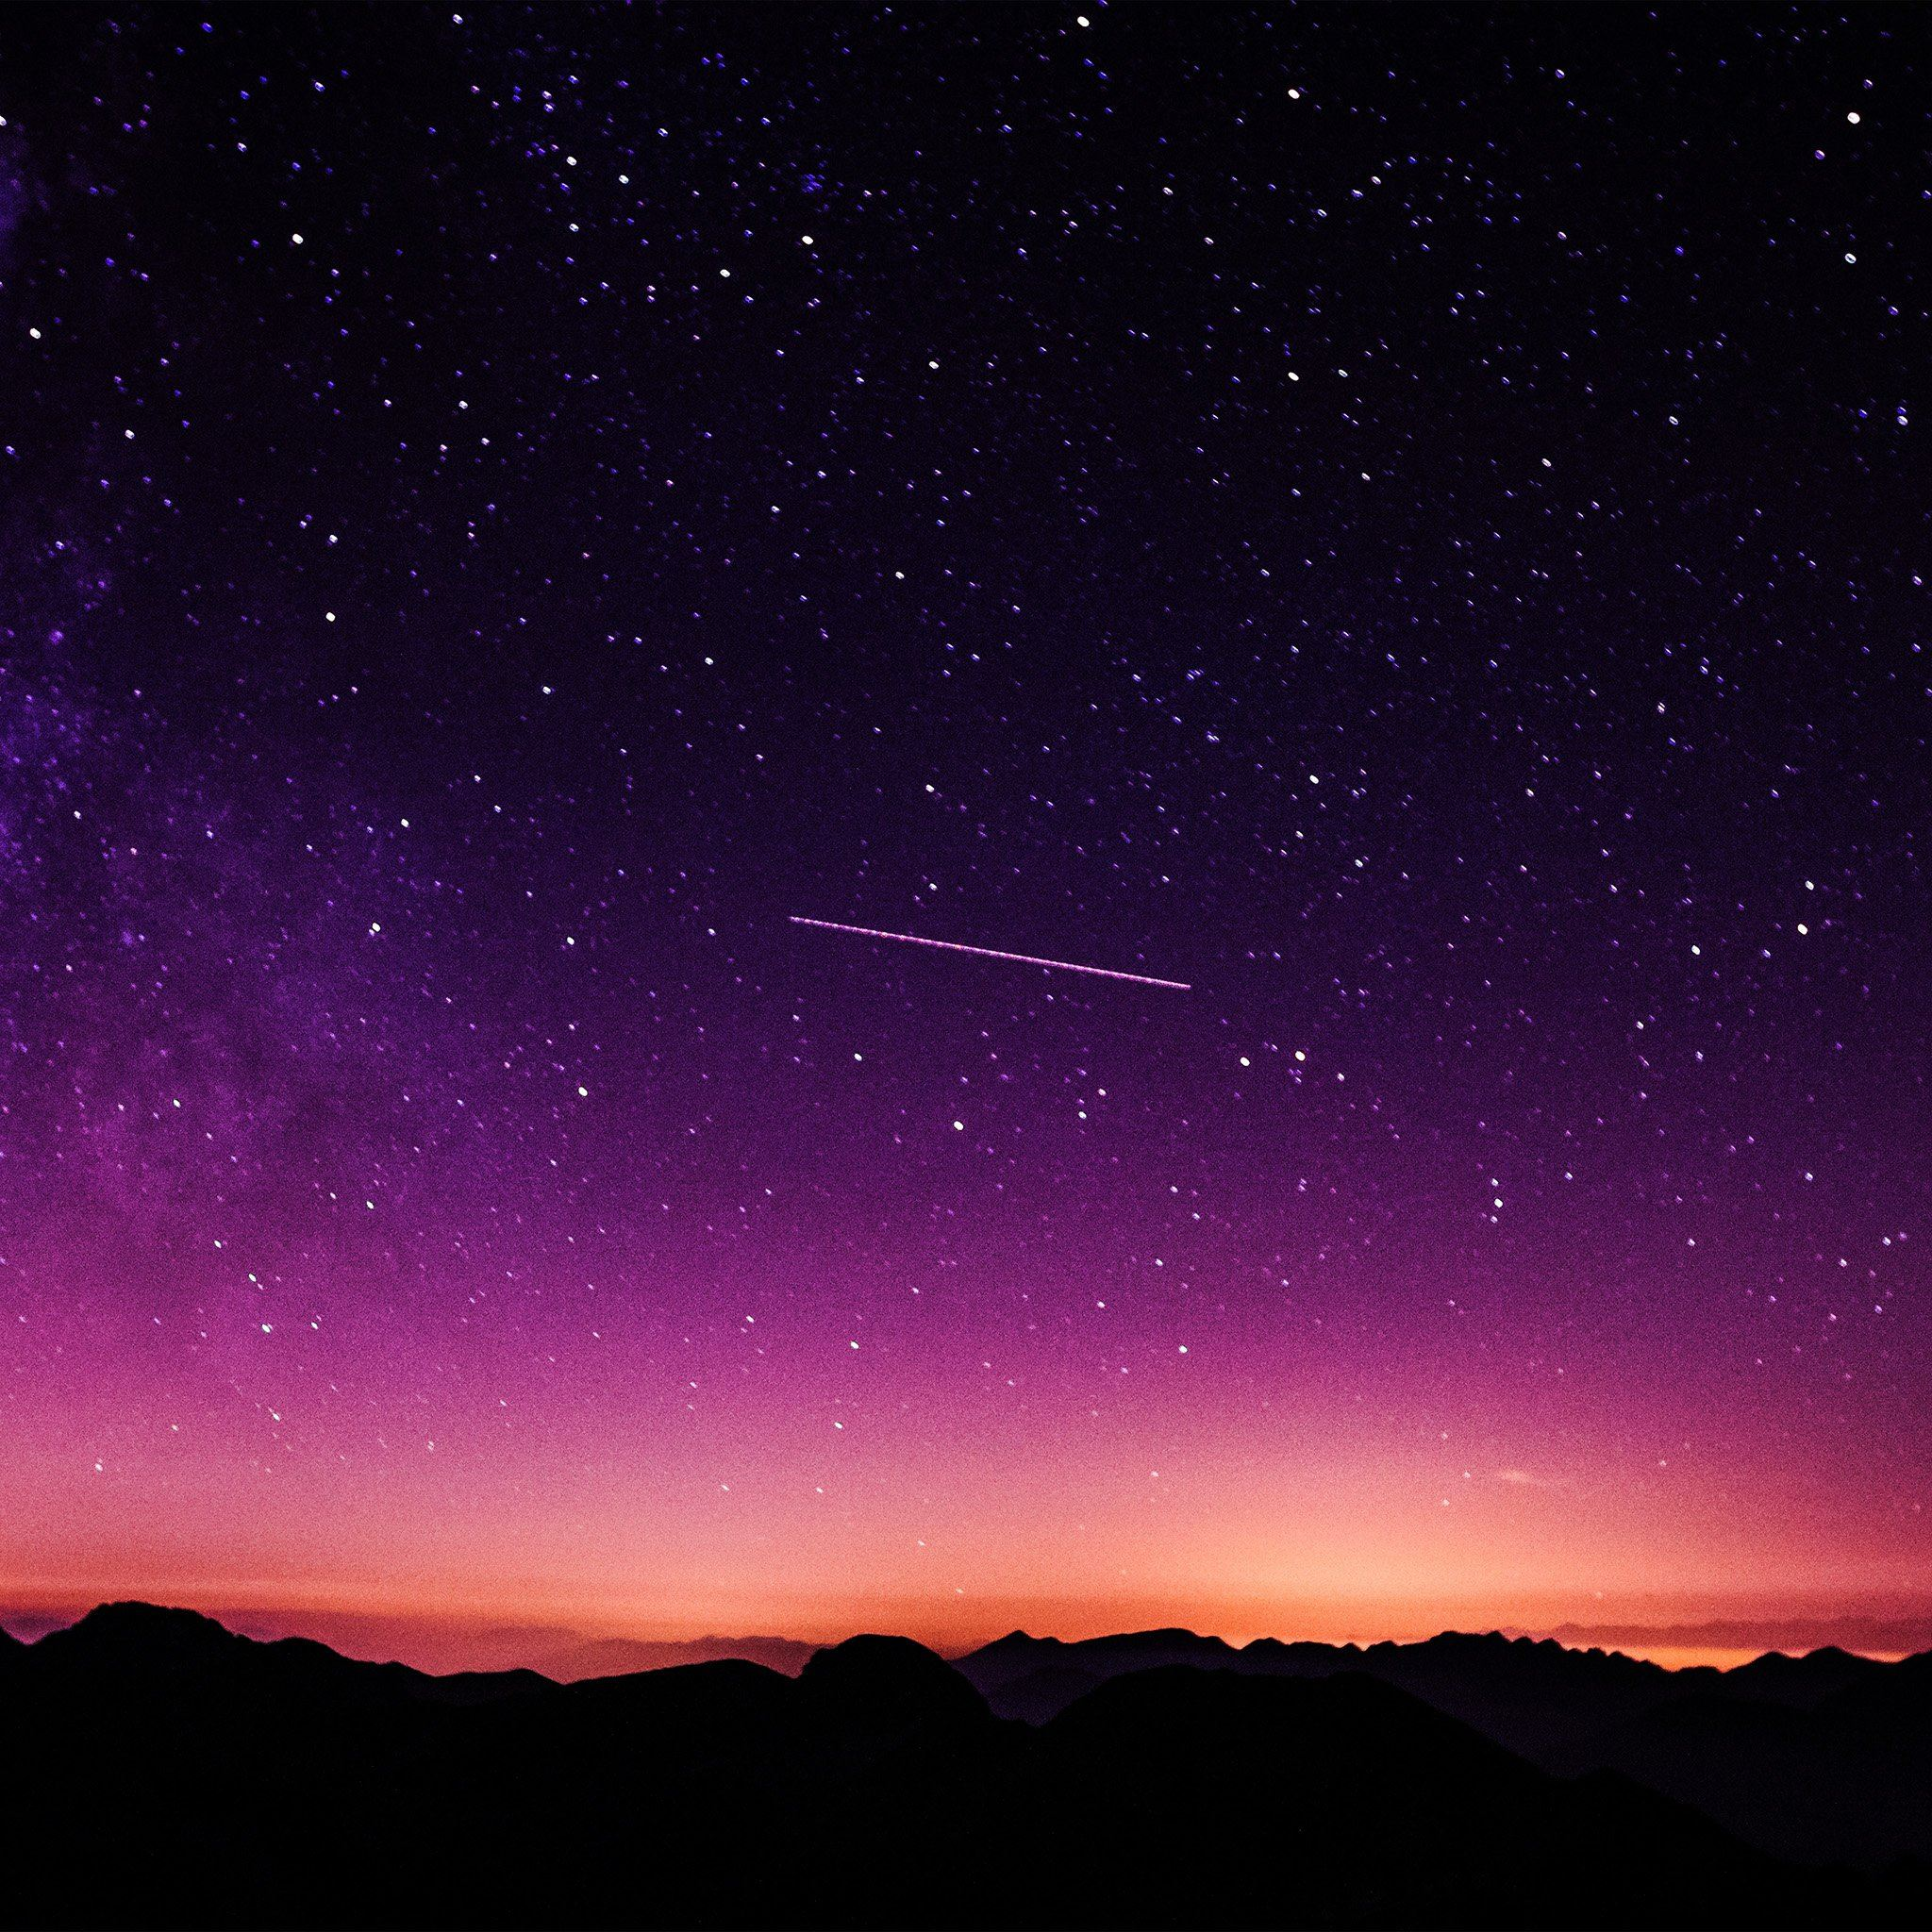 Star Galaxy Night Sky Mountain Purple Red Nature Space ipad air wallpaper ilikewallpaper com